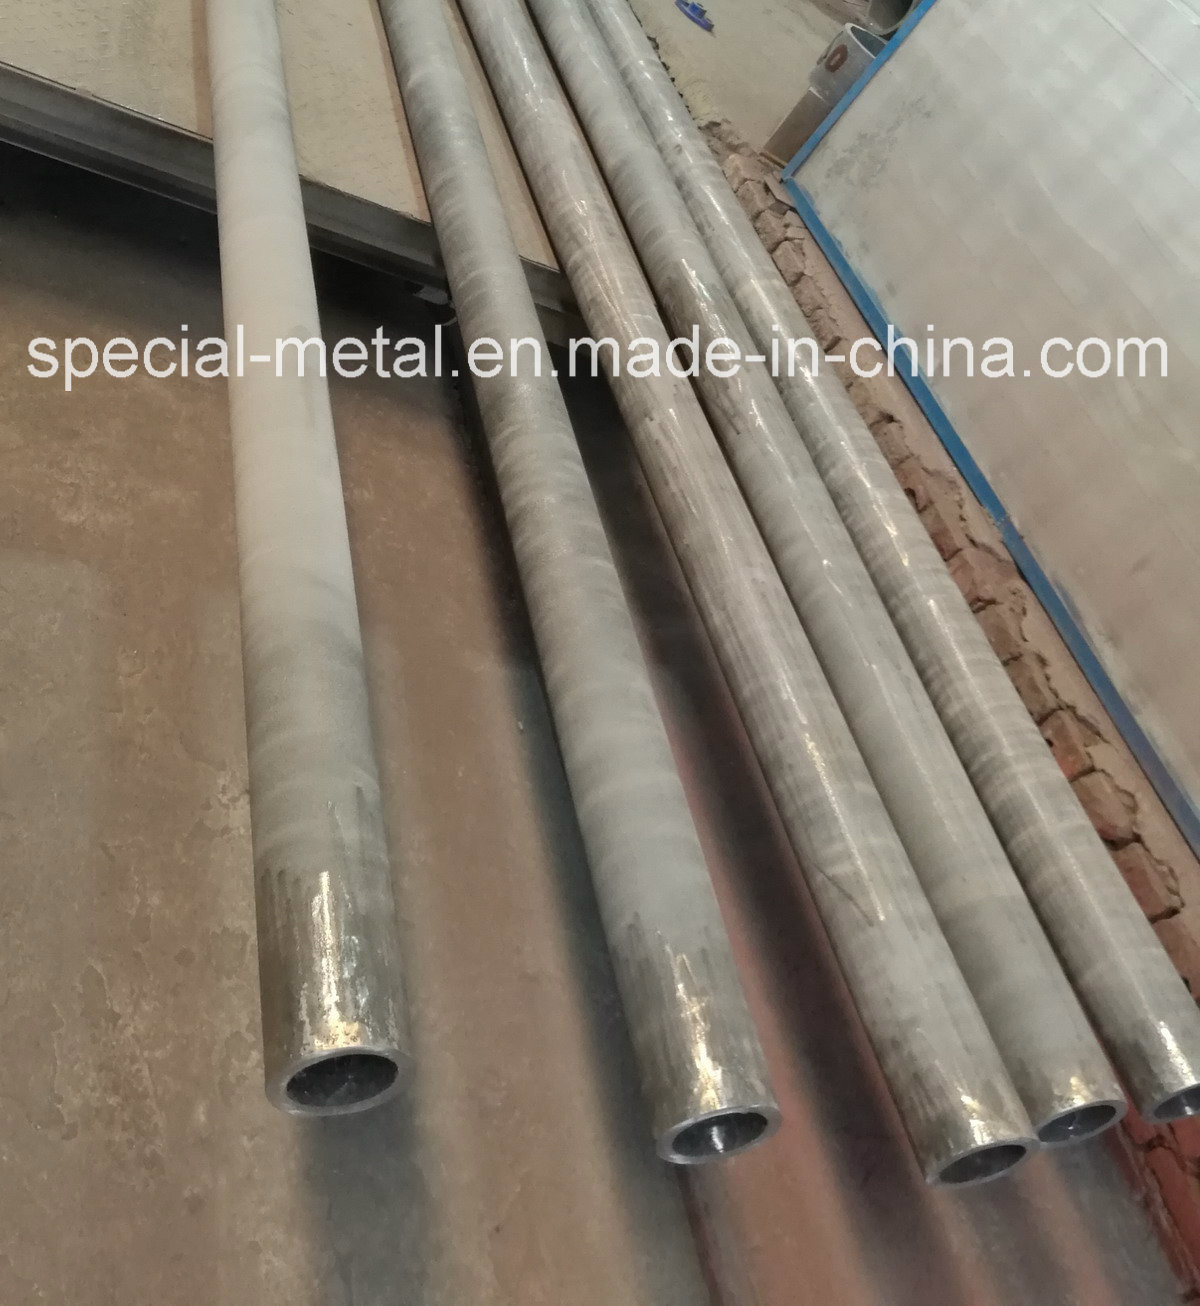 ASTM A532 Abrasion-Resistant Cast Iron Pipes